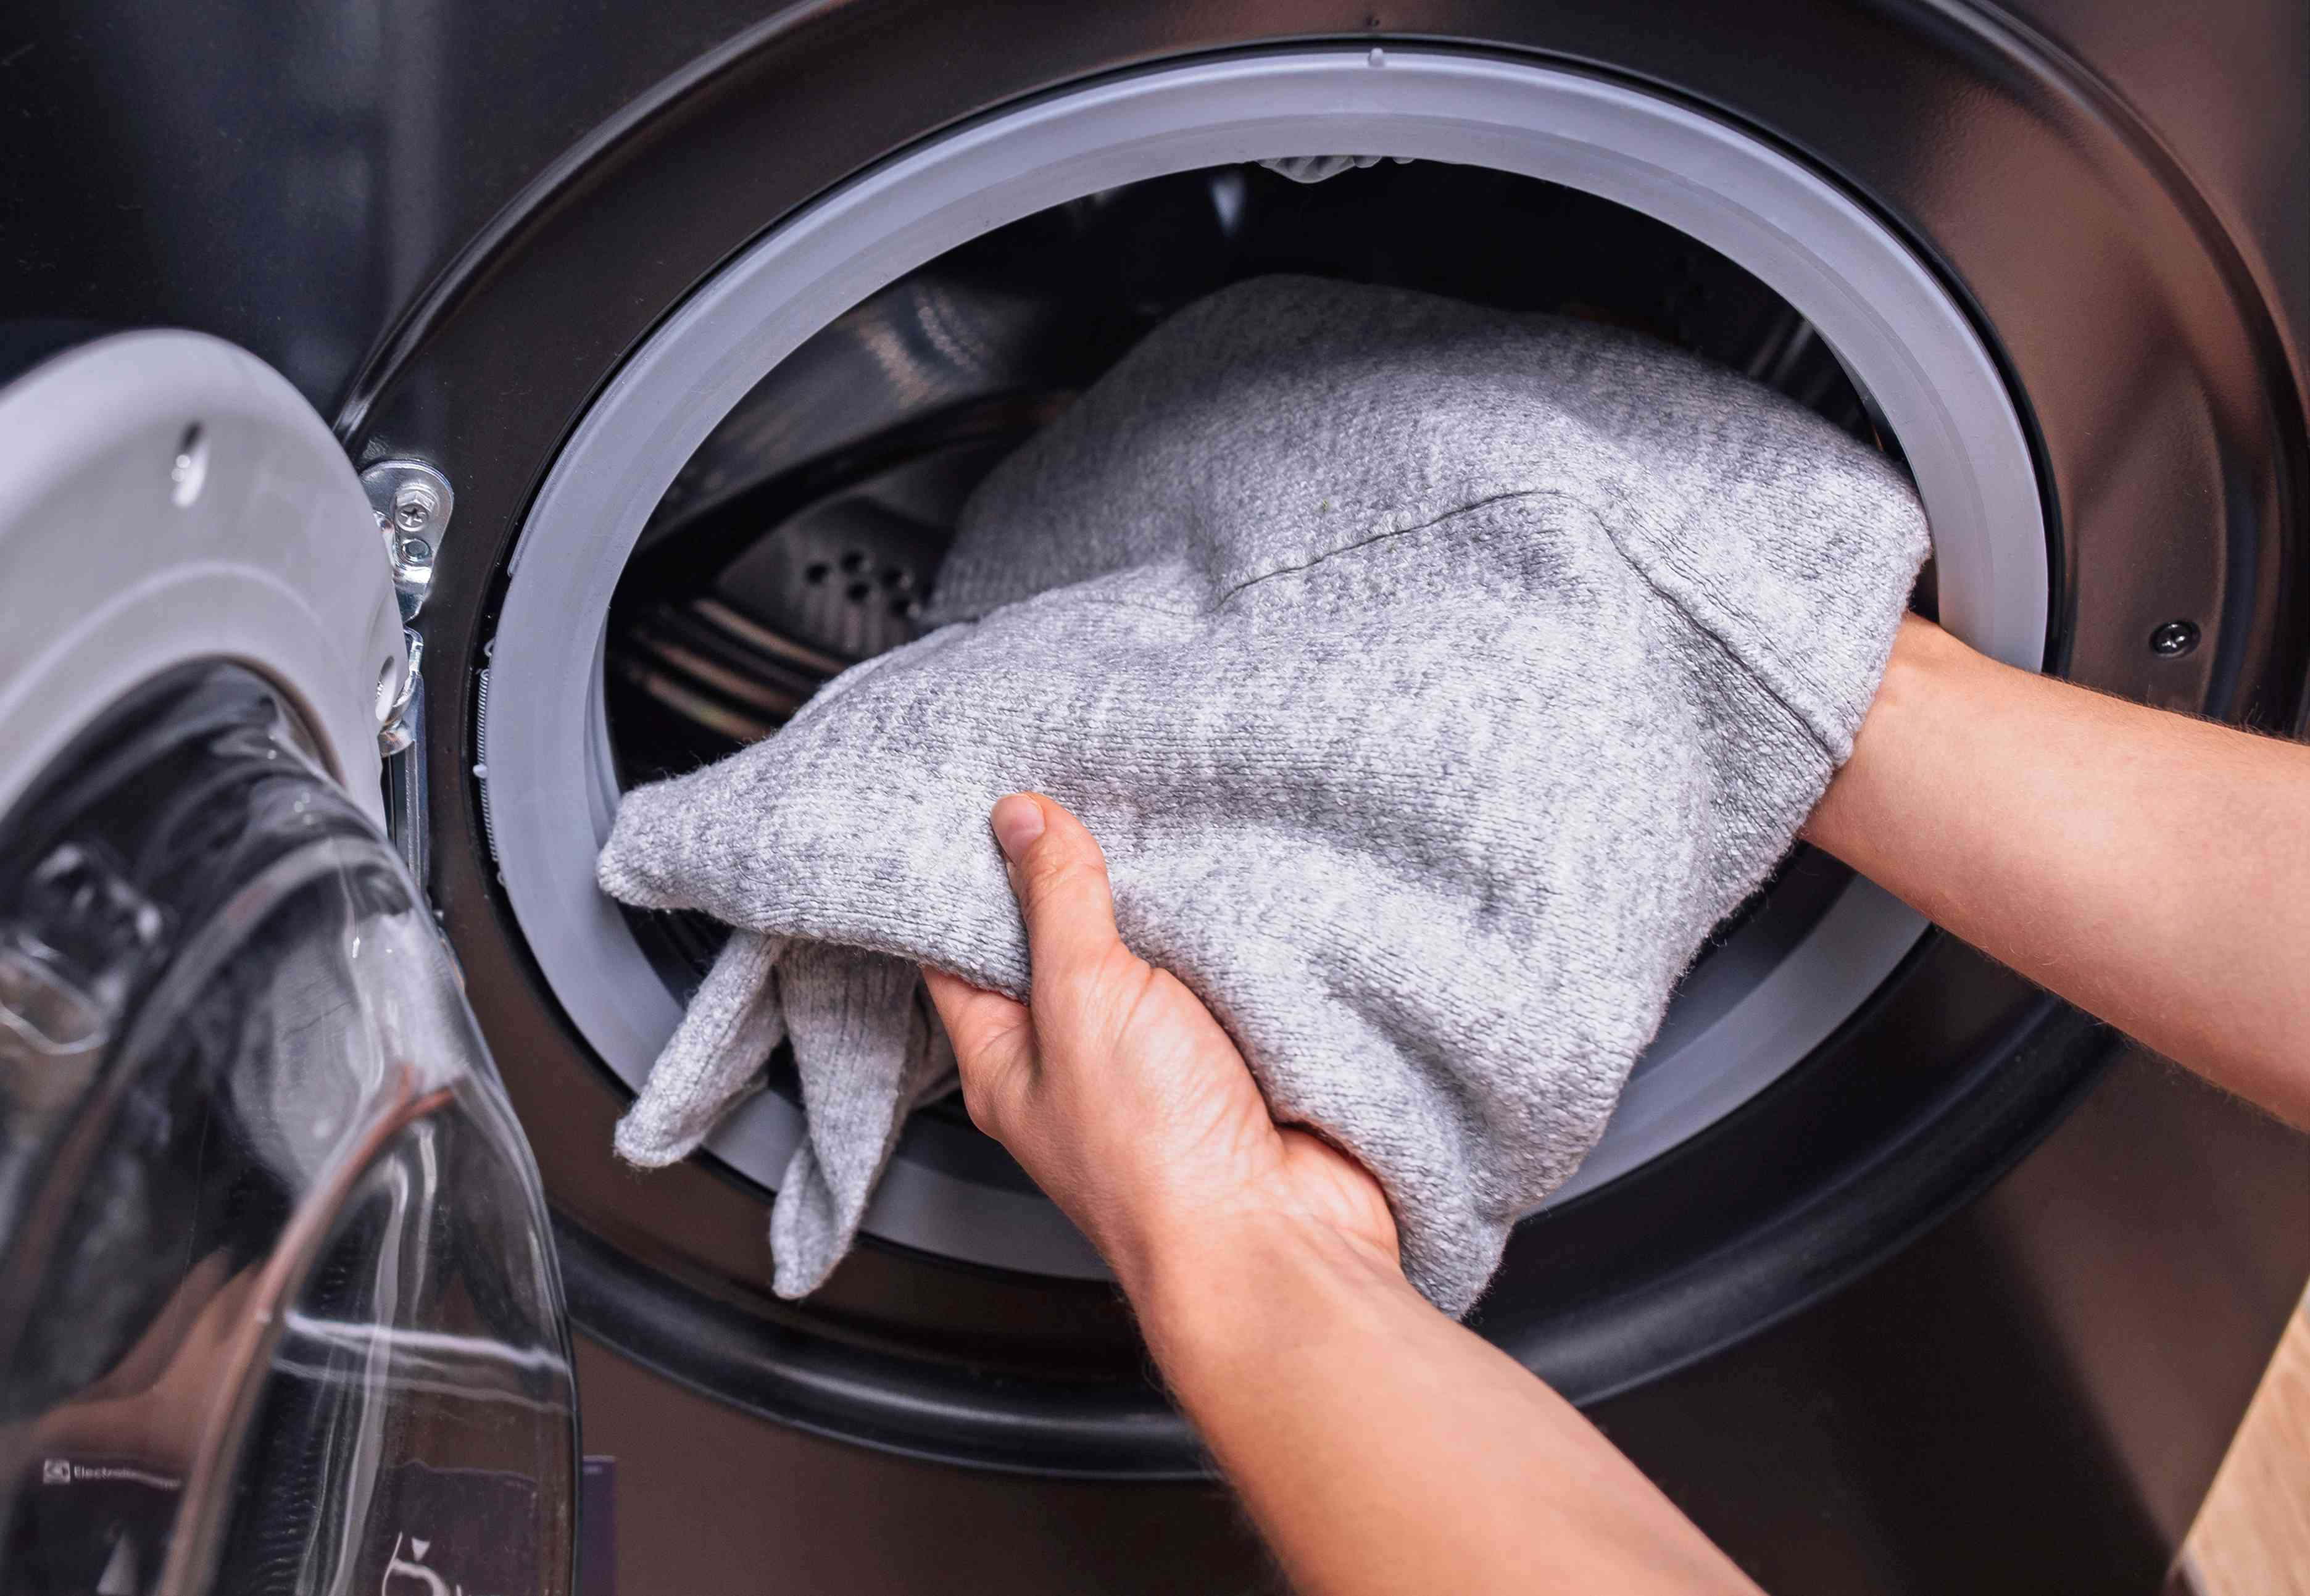 laundering the item as usual